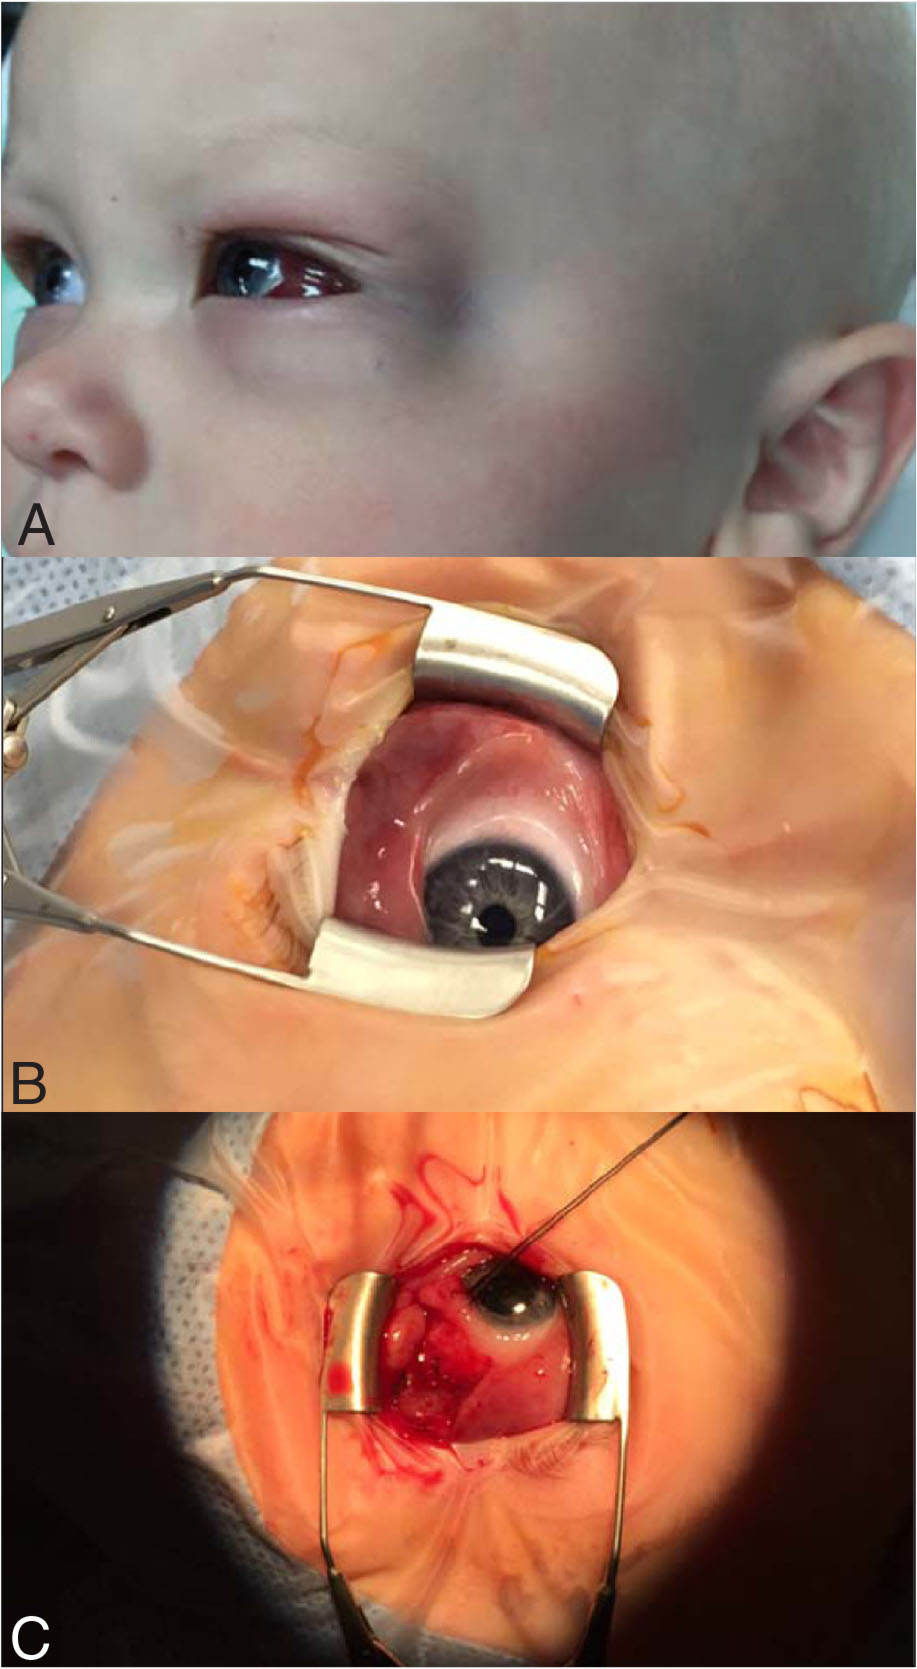 Evaluation before and after biopsy. (A) Left proptosis prior to biopsy. (B) Left orbital mass prior to incisional biopsy. (C) Left orbital mass after incisional biopsy.